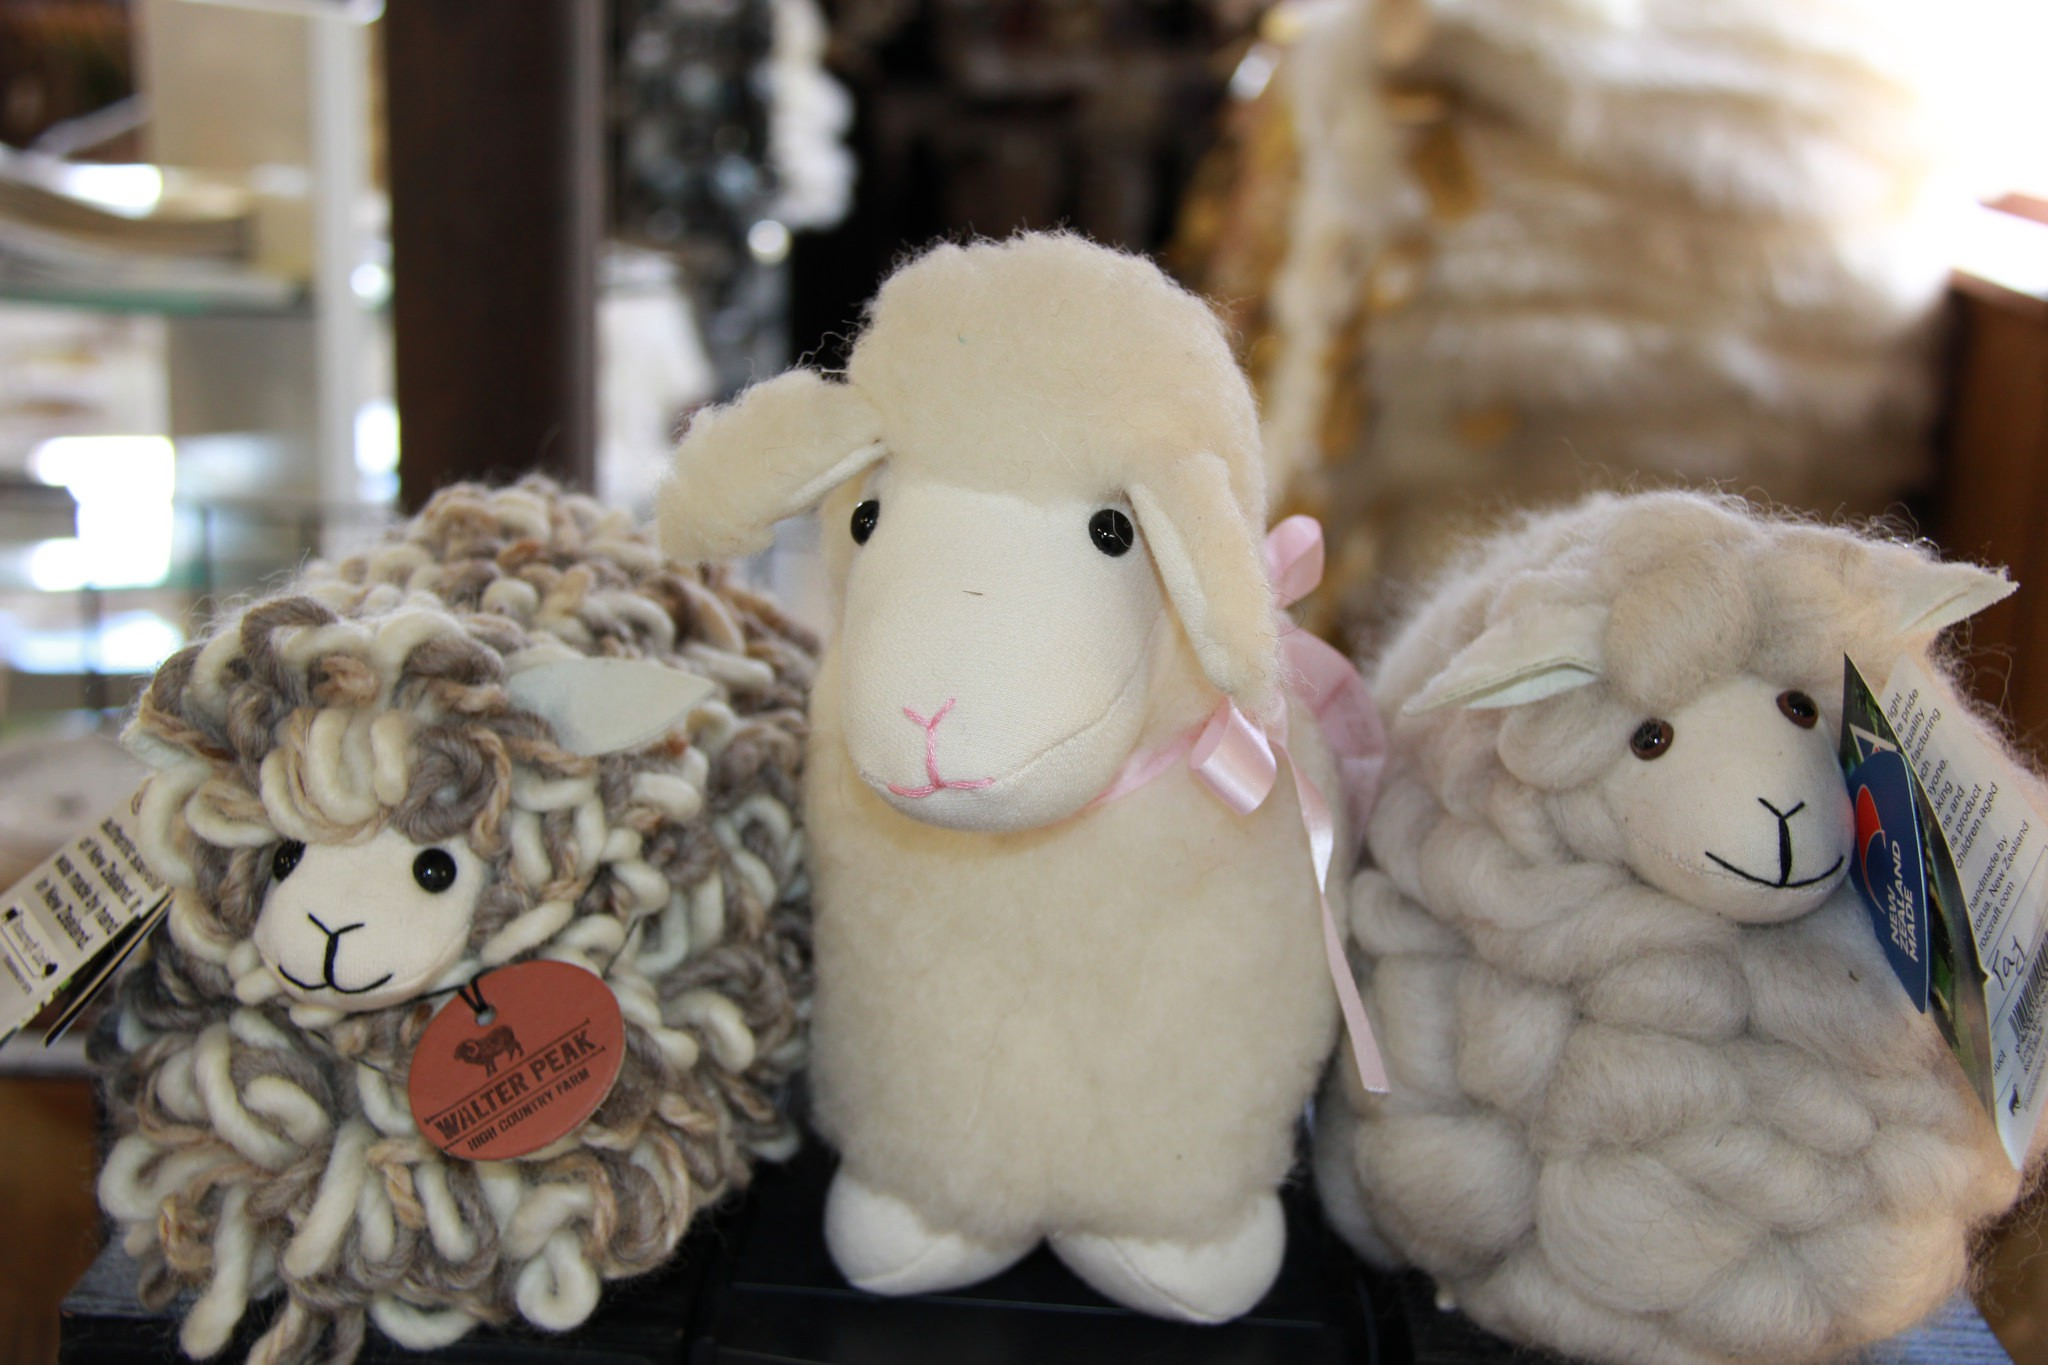 Souvenir sheep from a shop in Queenstown | ©  anne beaumont/Flickr